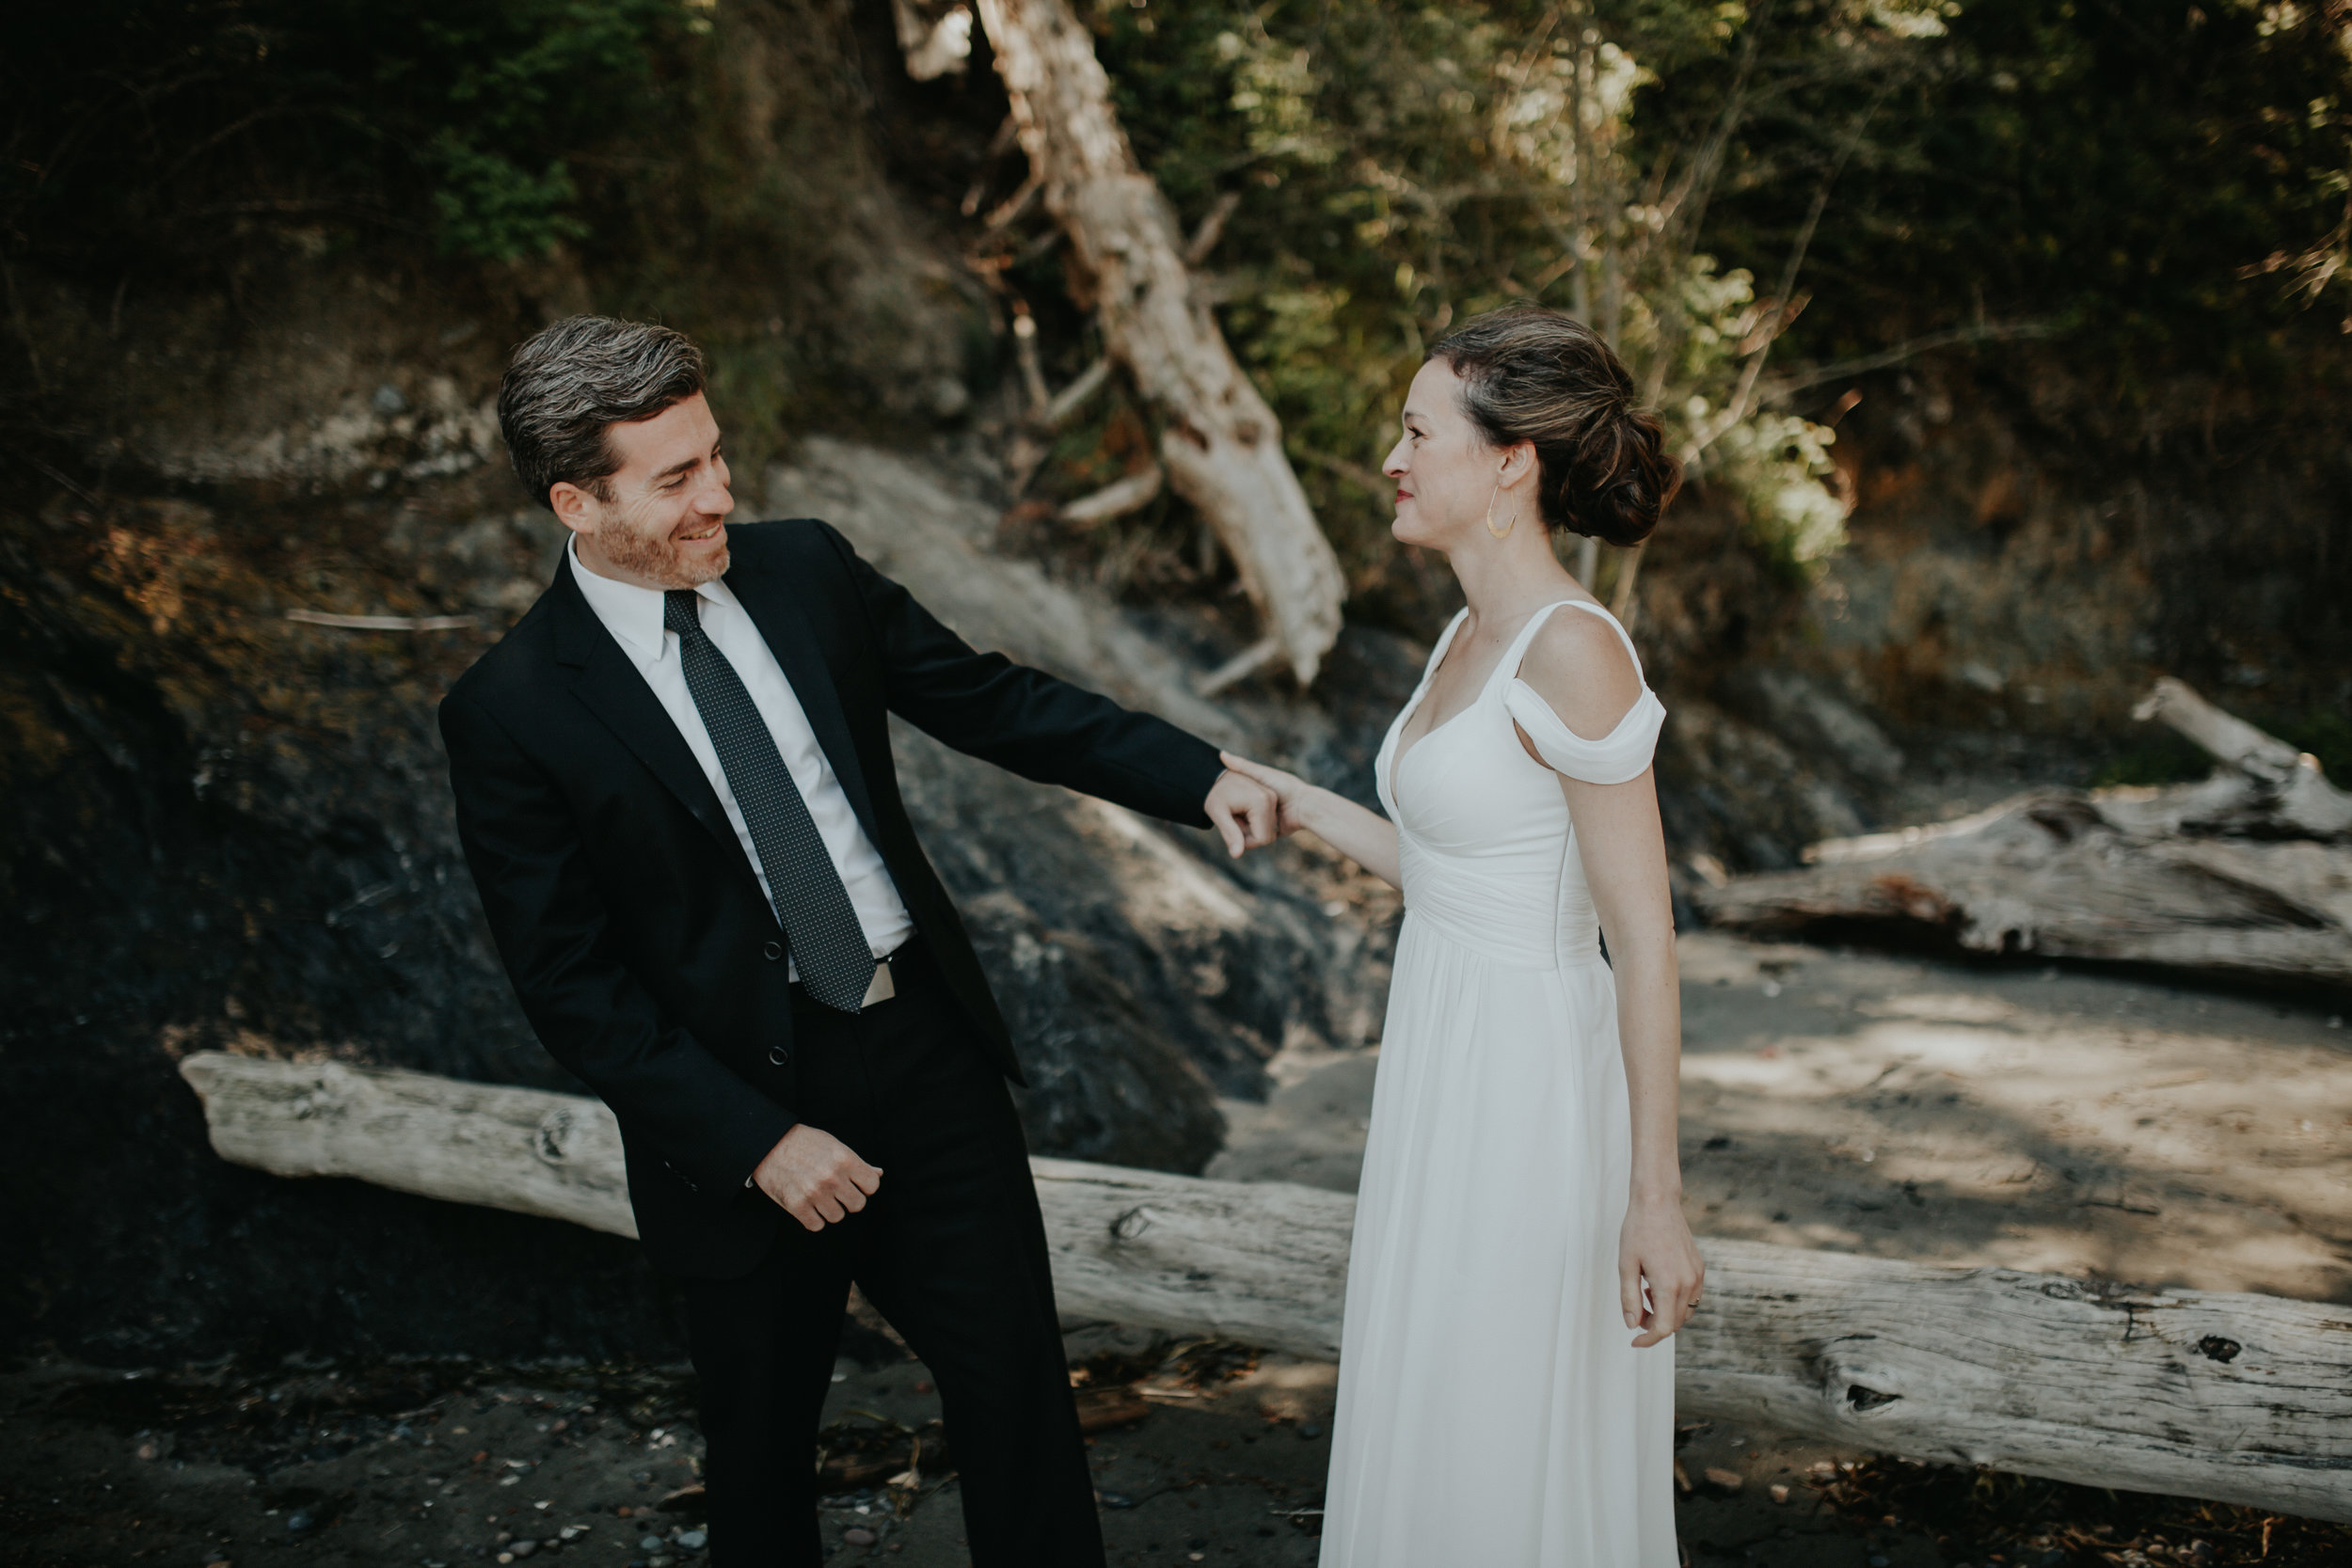 edmonds washington wedding | outdoor wedding | backyard wedding inspiration | seattle top wedding photographers